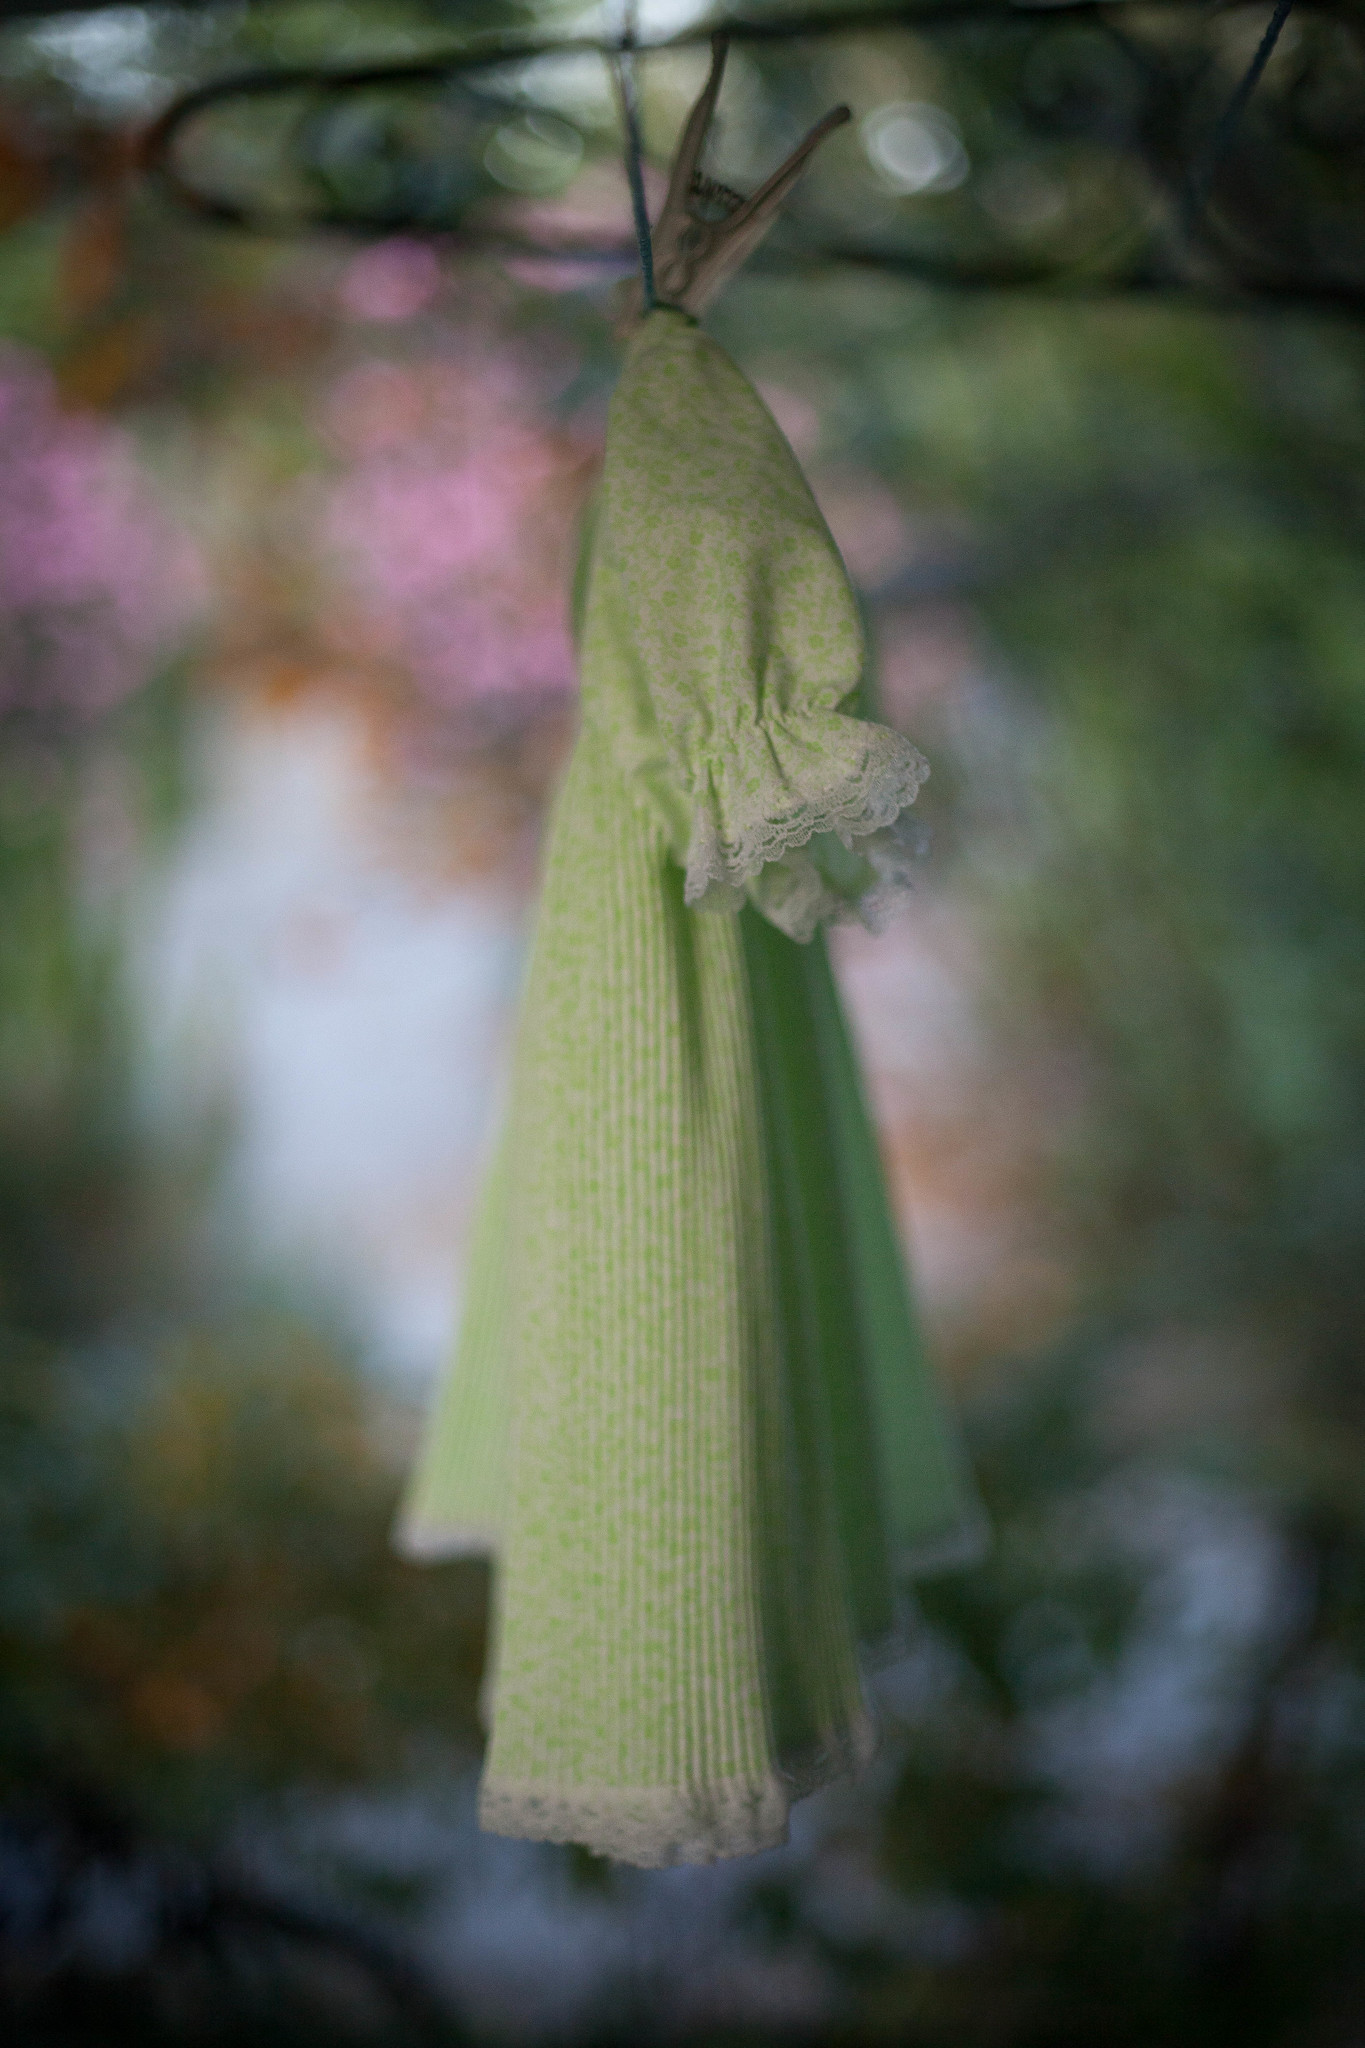 Green dress drying.